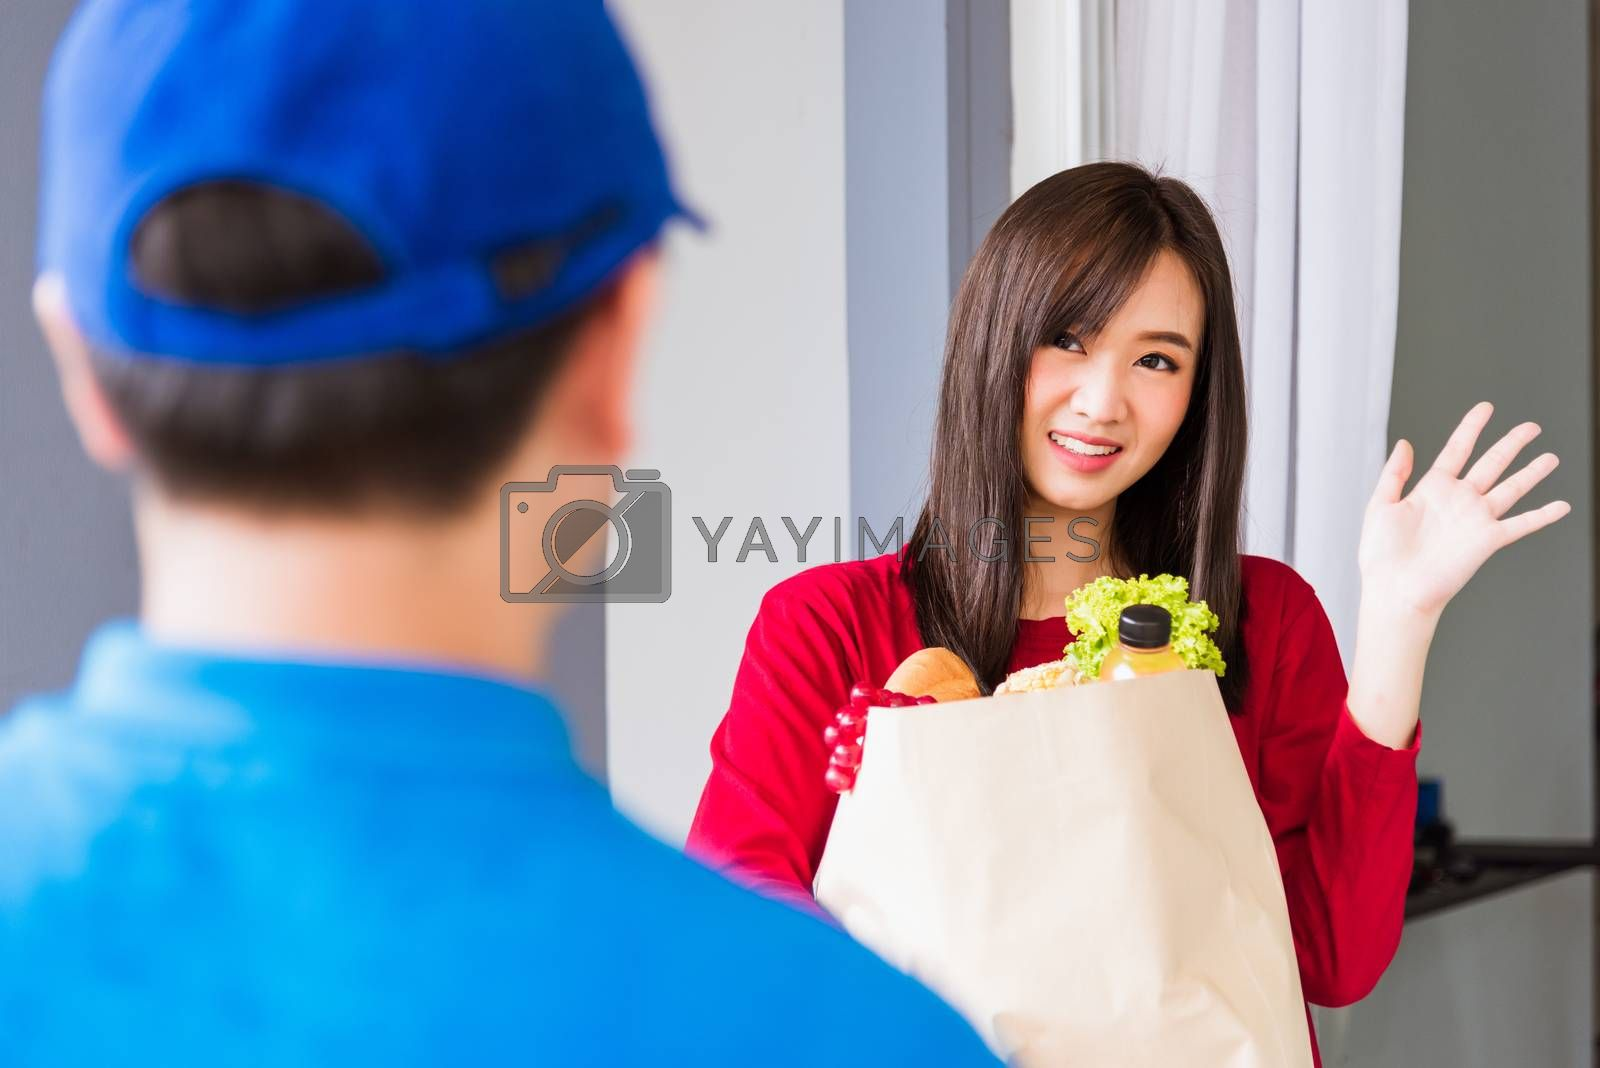 Delivery man making grocery service giving fresh vegetables in p by Sorapop